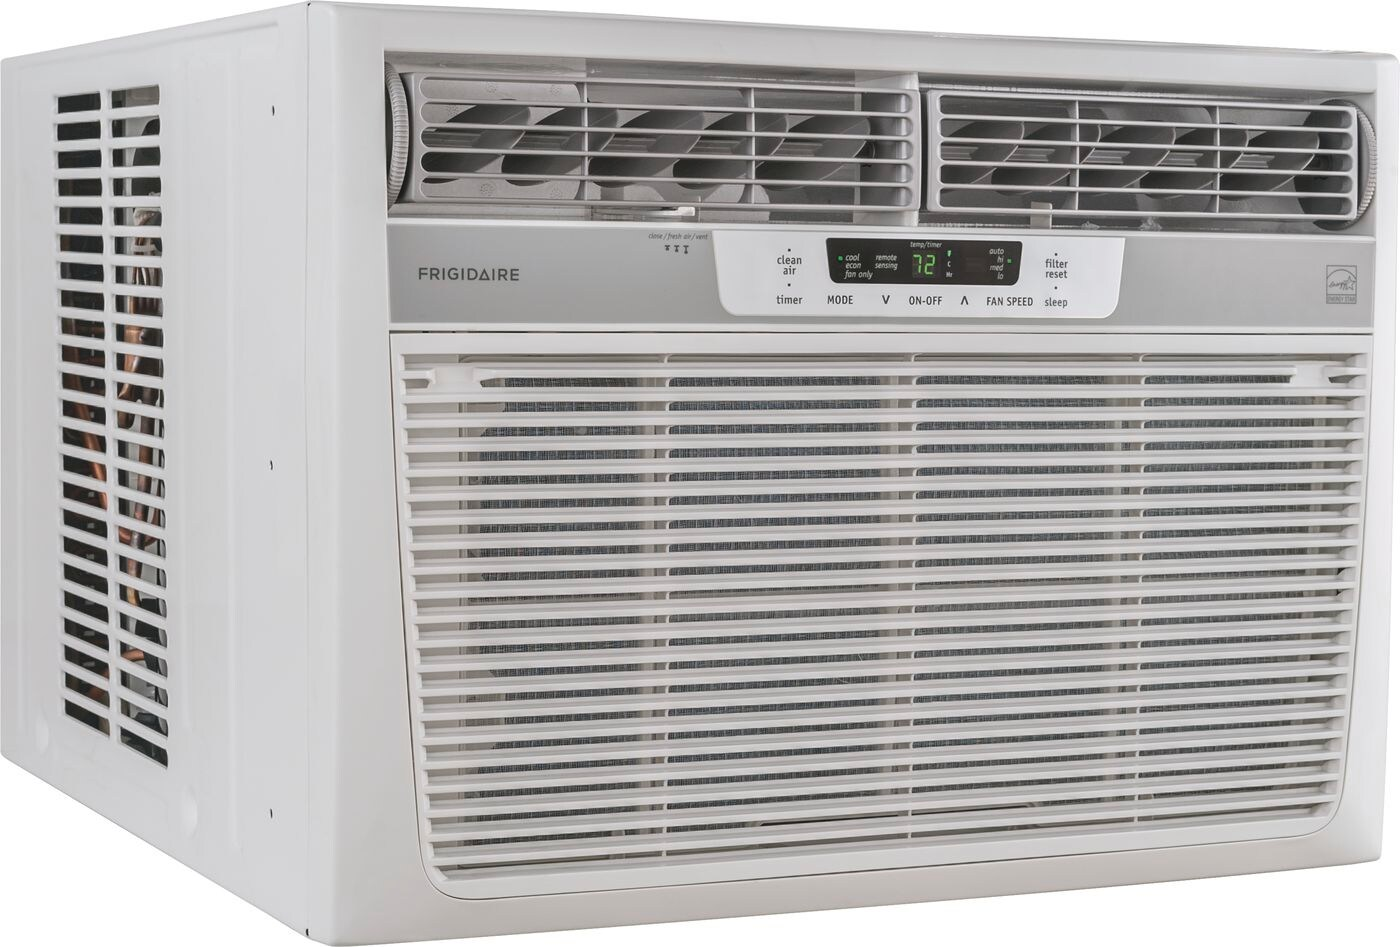 Frigidaire - FFRE1533S1 - 15,100 BTU Window-Mounted Room Air